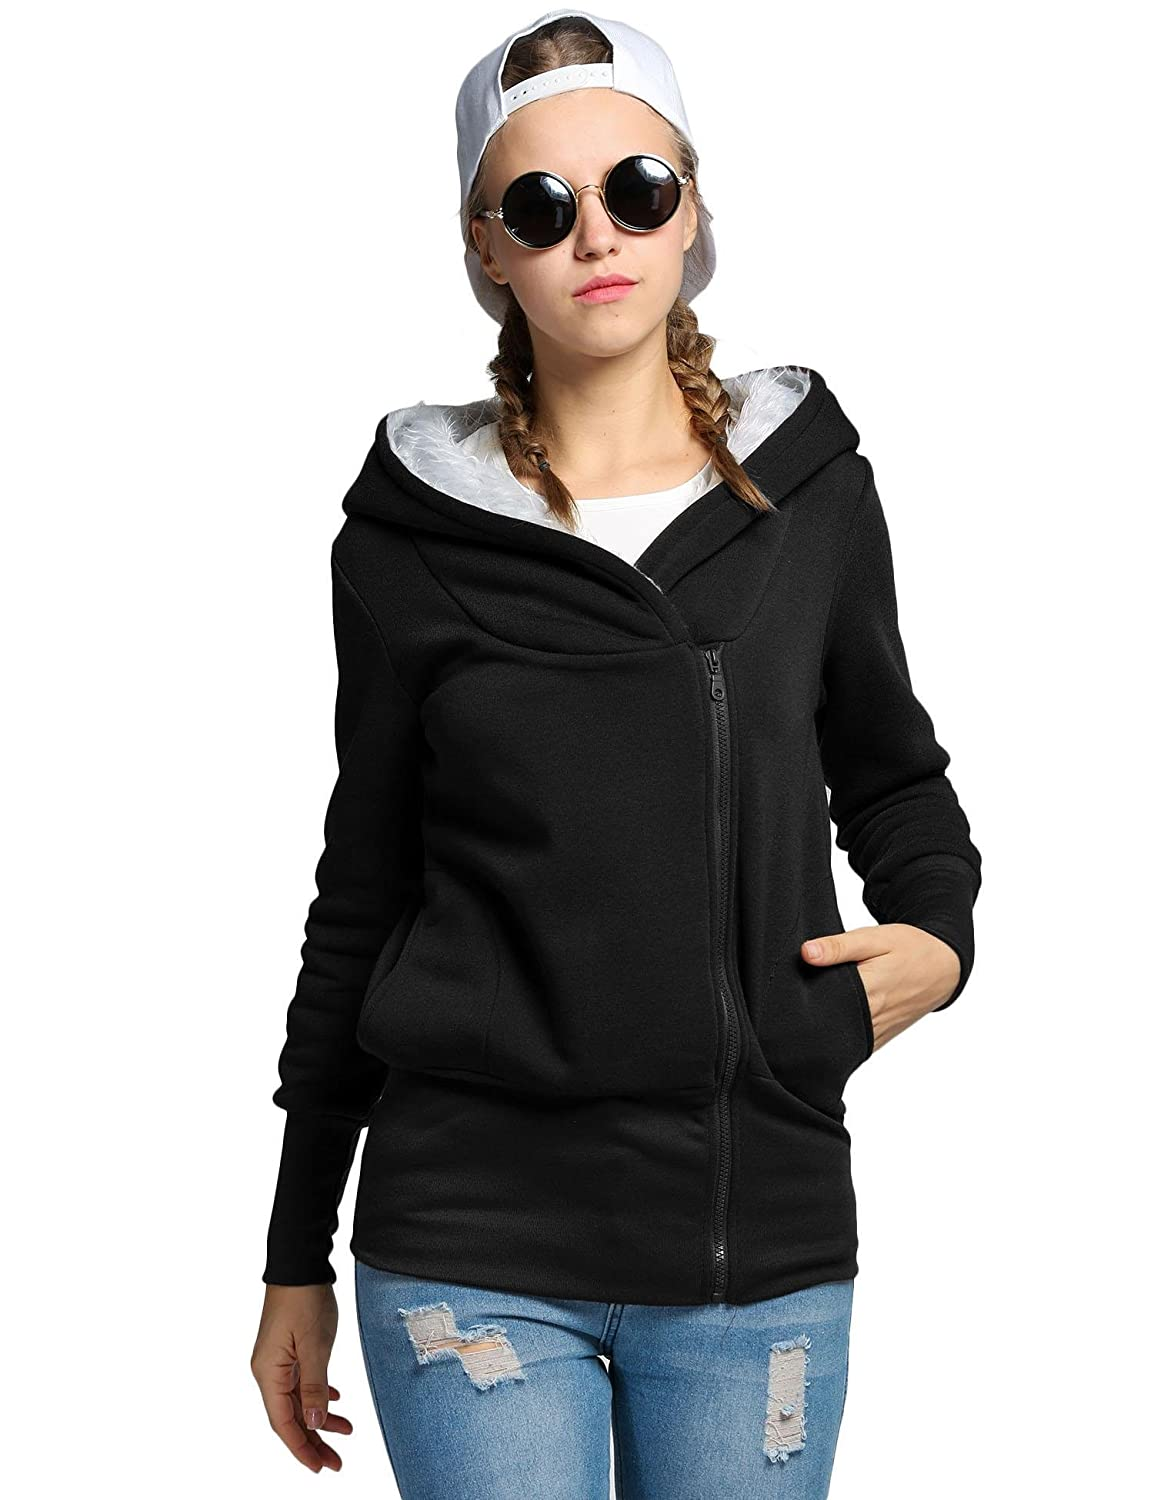 ce52a3d600f Nessere Women Hoodie Jacket Coat Warm Outerwear Hooded Zip Cardigan Jacket  Coat at Amazon Women s Clothing store